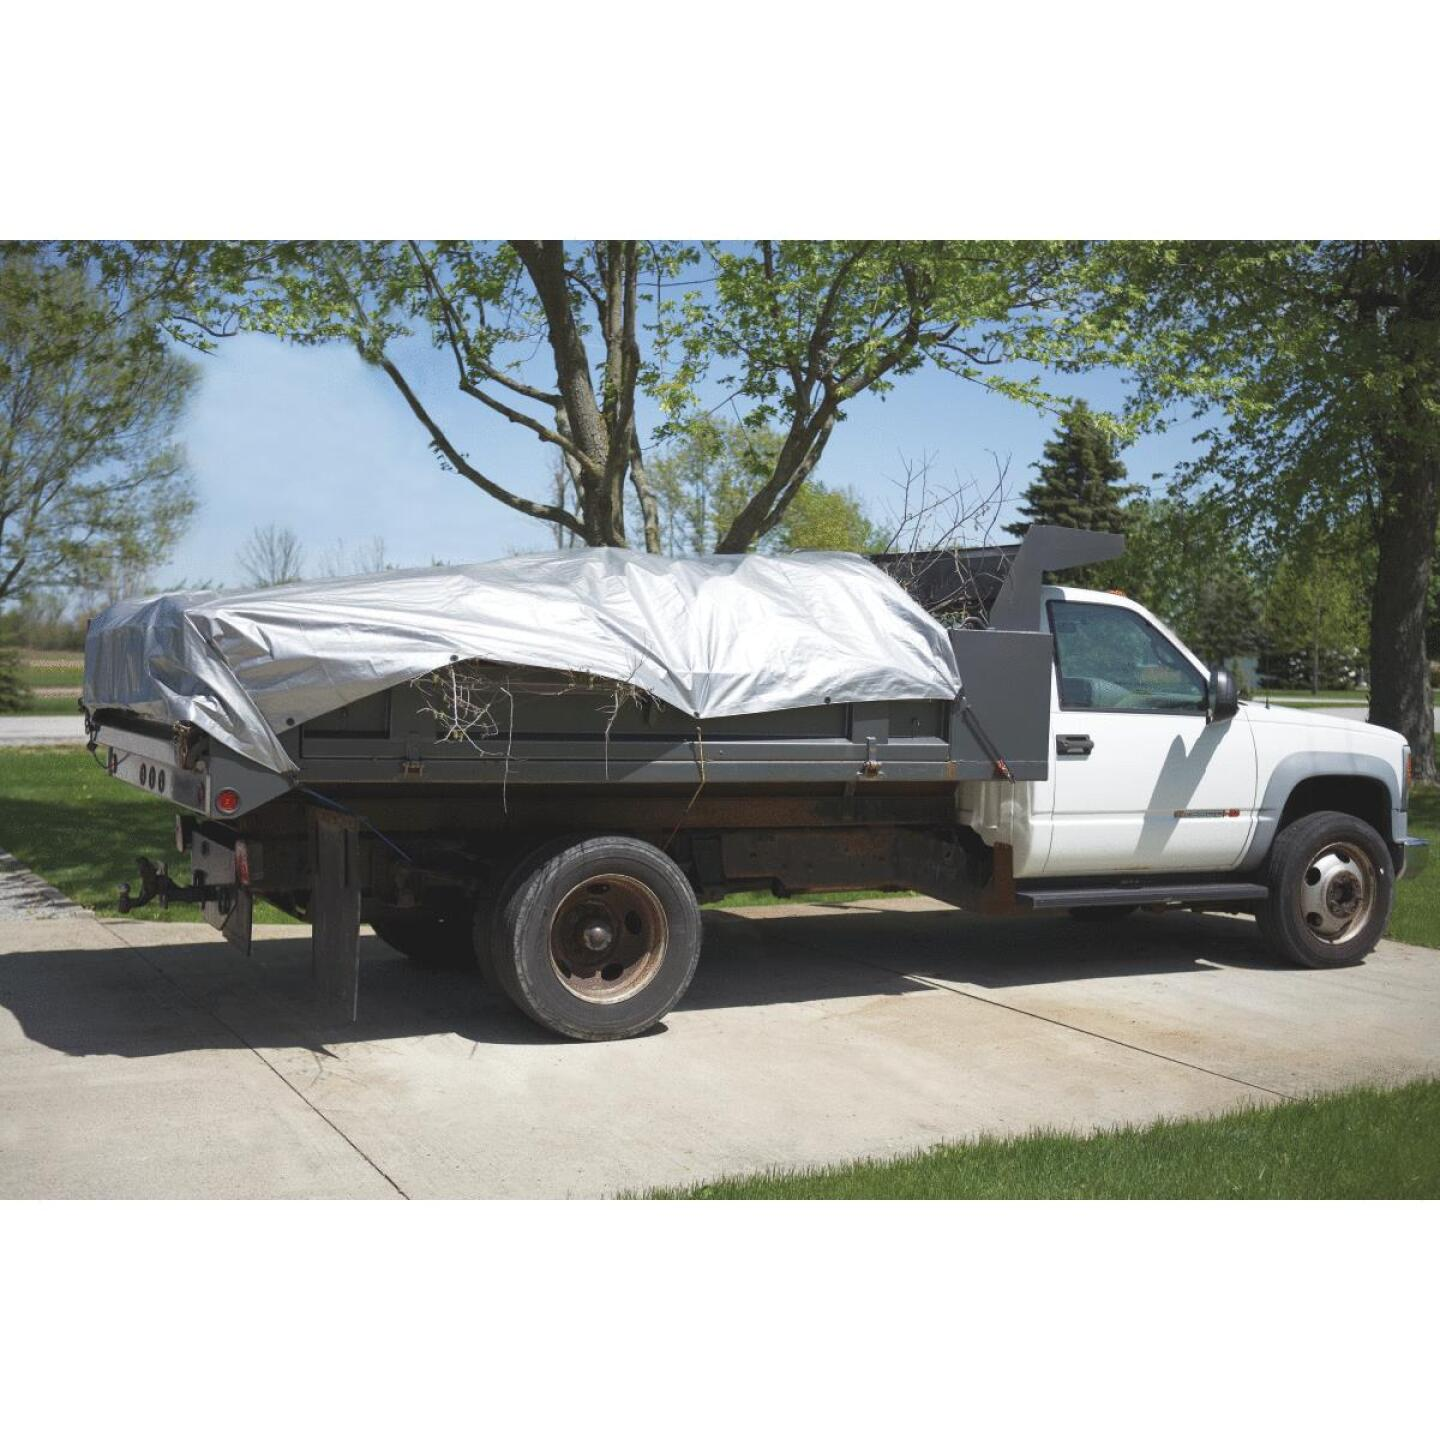 Do it Best Silver Woven 9 Ft. x 12 Ft. Heavy Duty Poly Tarp Image 2